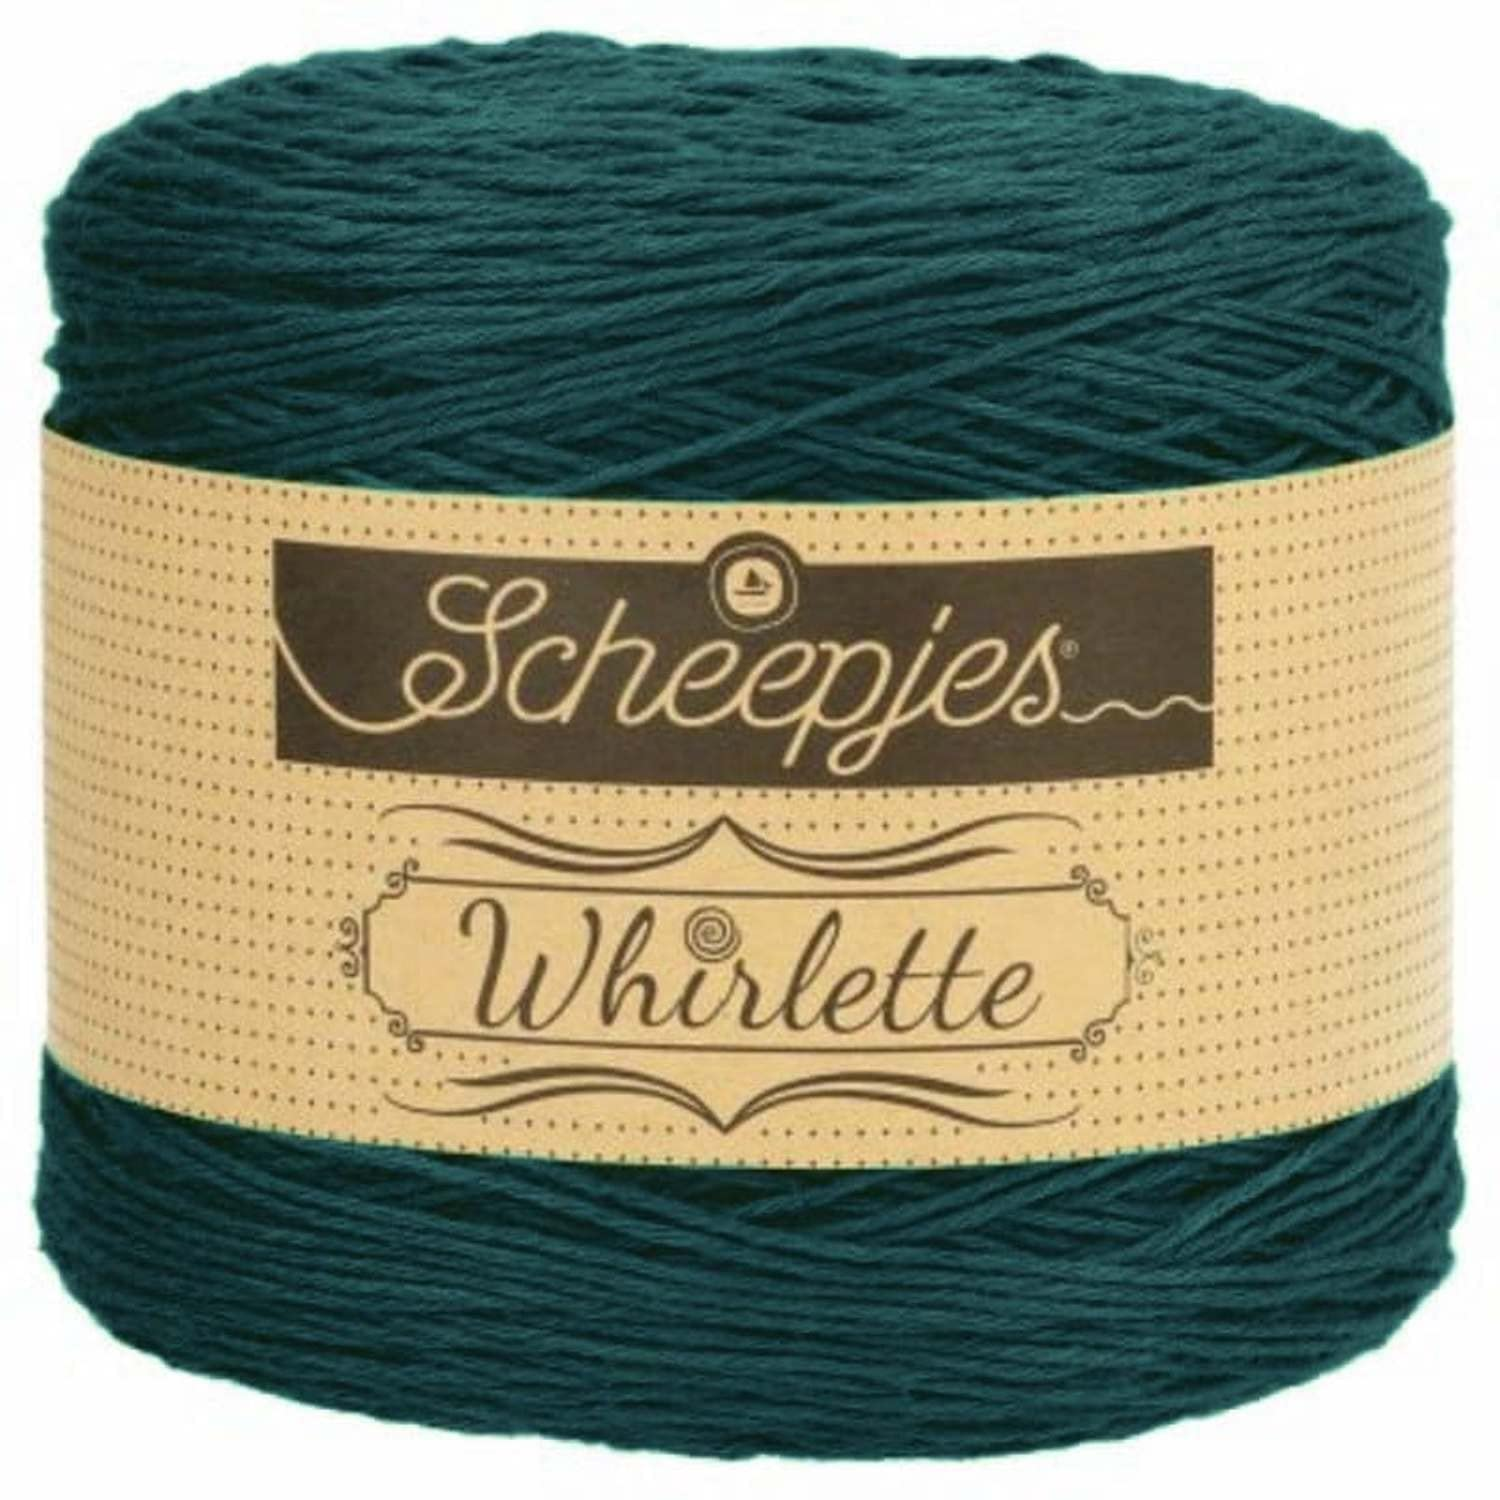 Scheepjes Yarn Whirlette (854 - Blueberry)